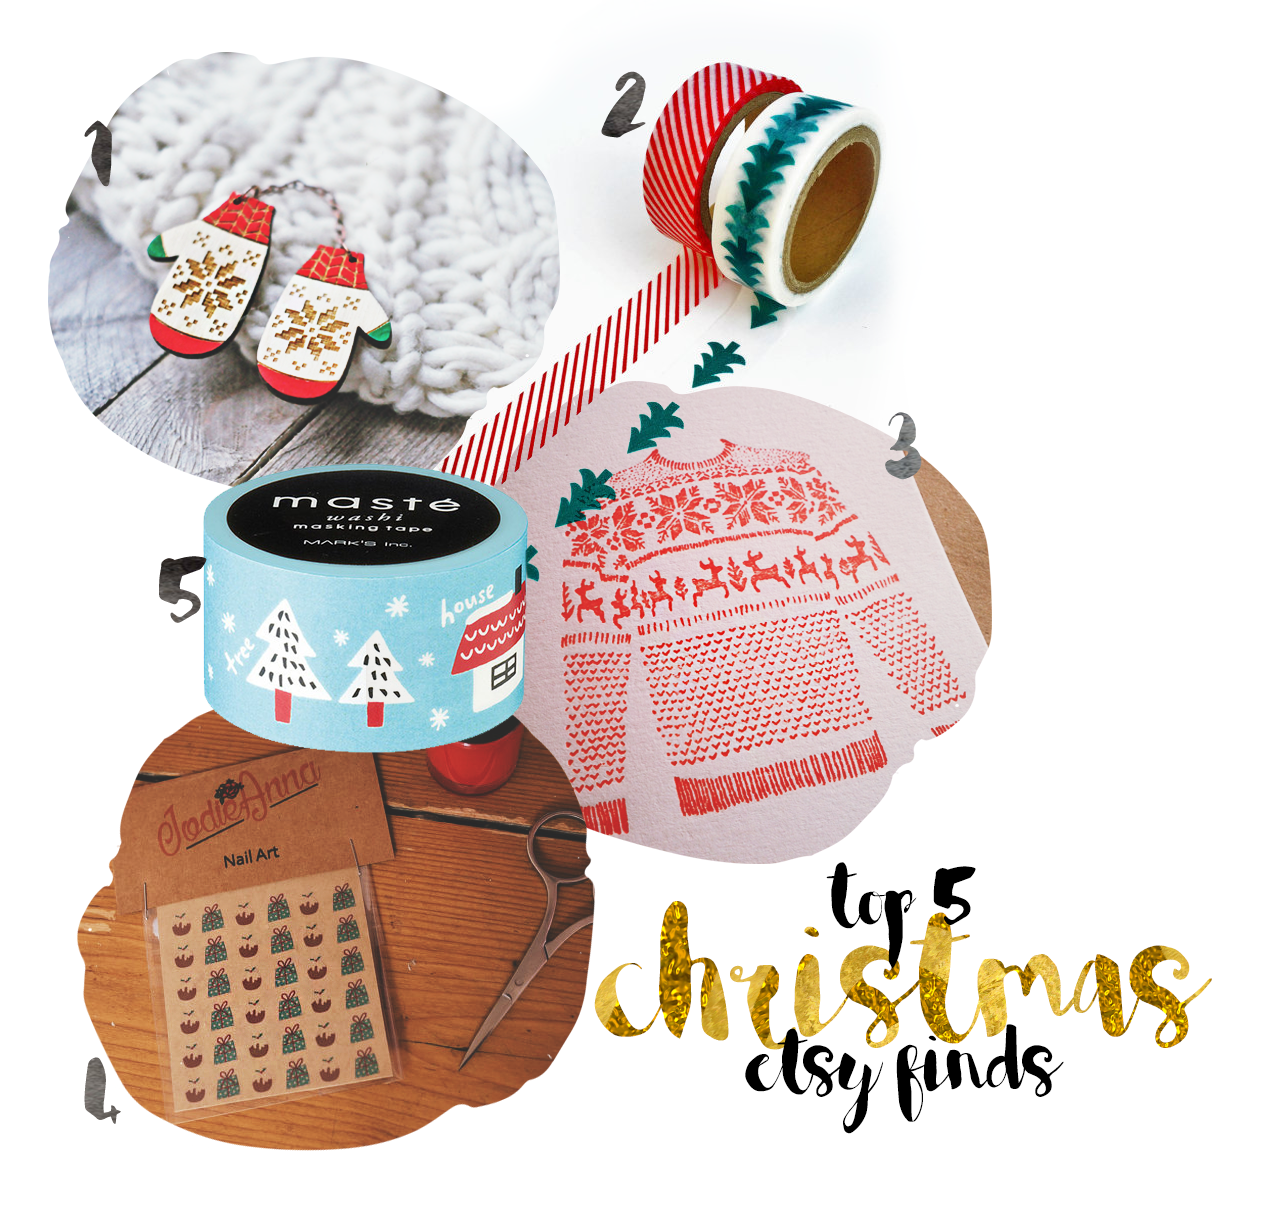 Shop Independent: Christmas Etsy Gifts under £10